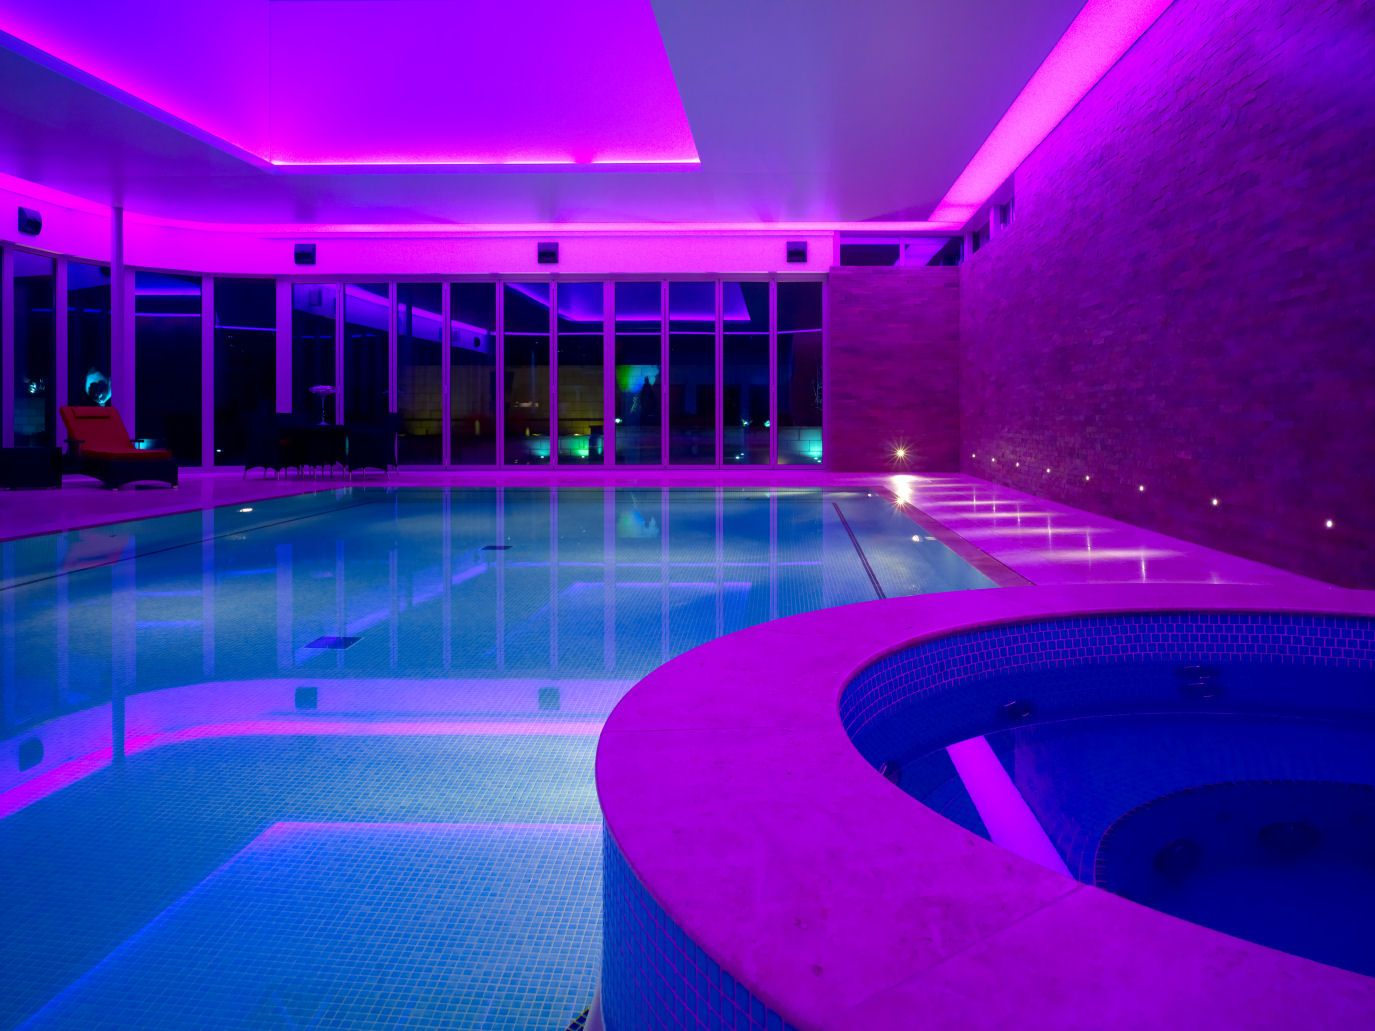 Swimming Pool. Indoor Pool Lights With Purple And Blue